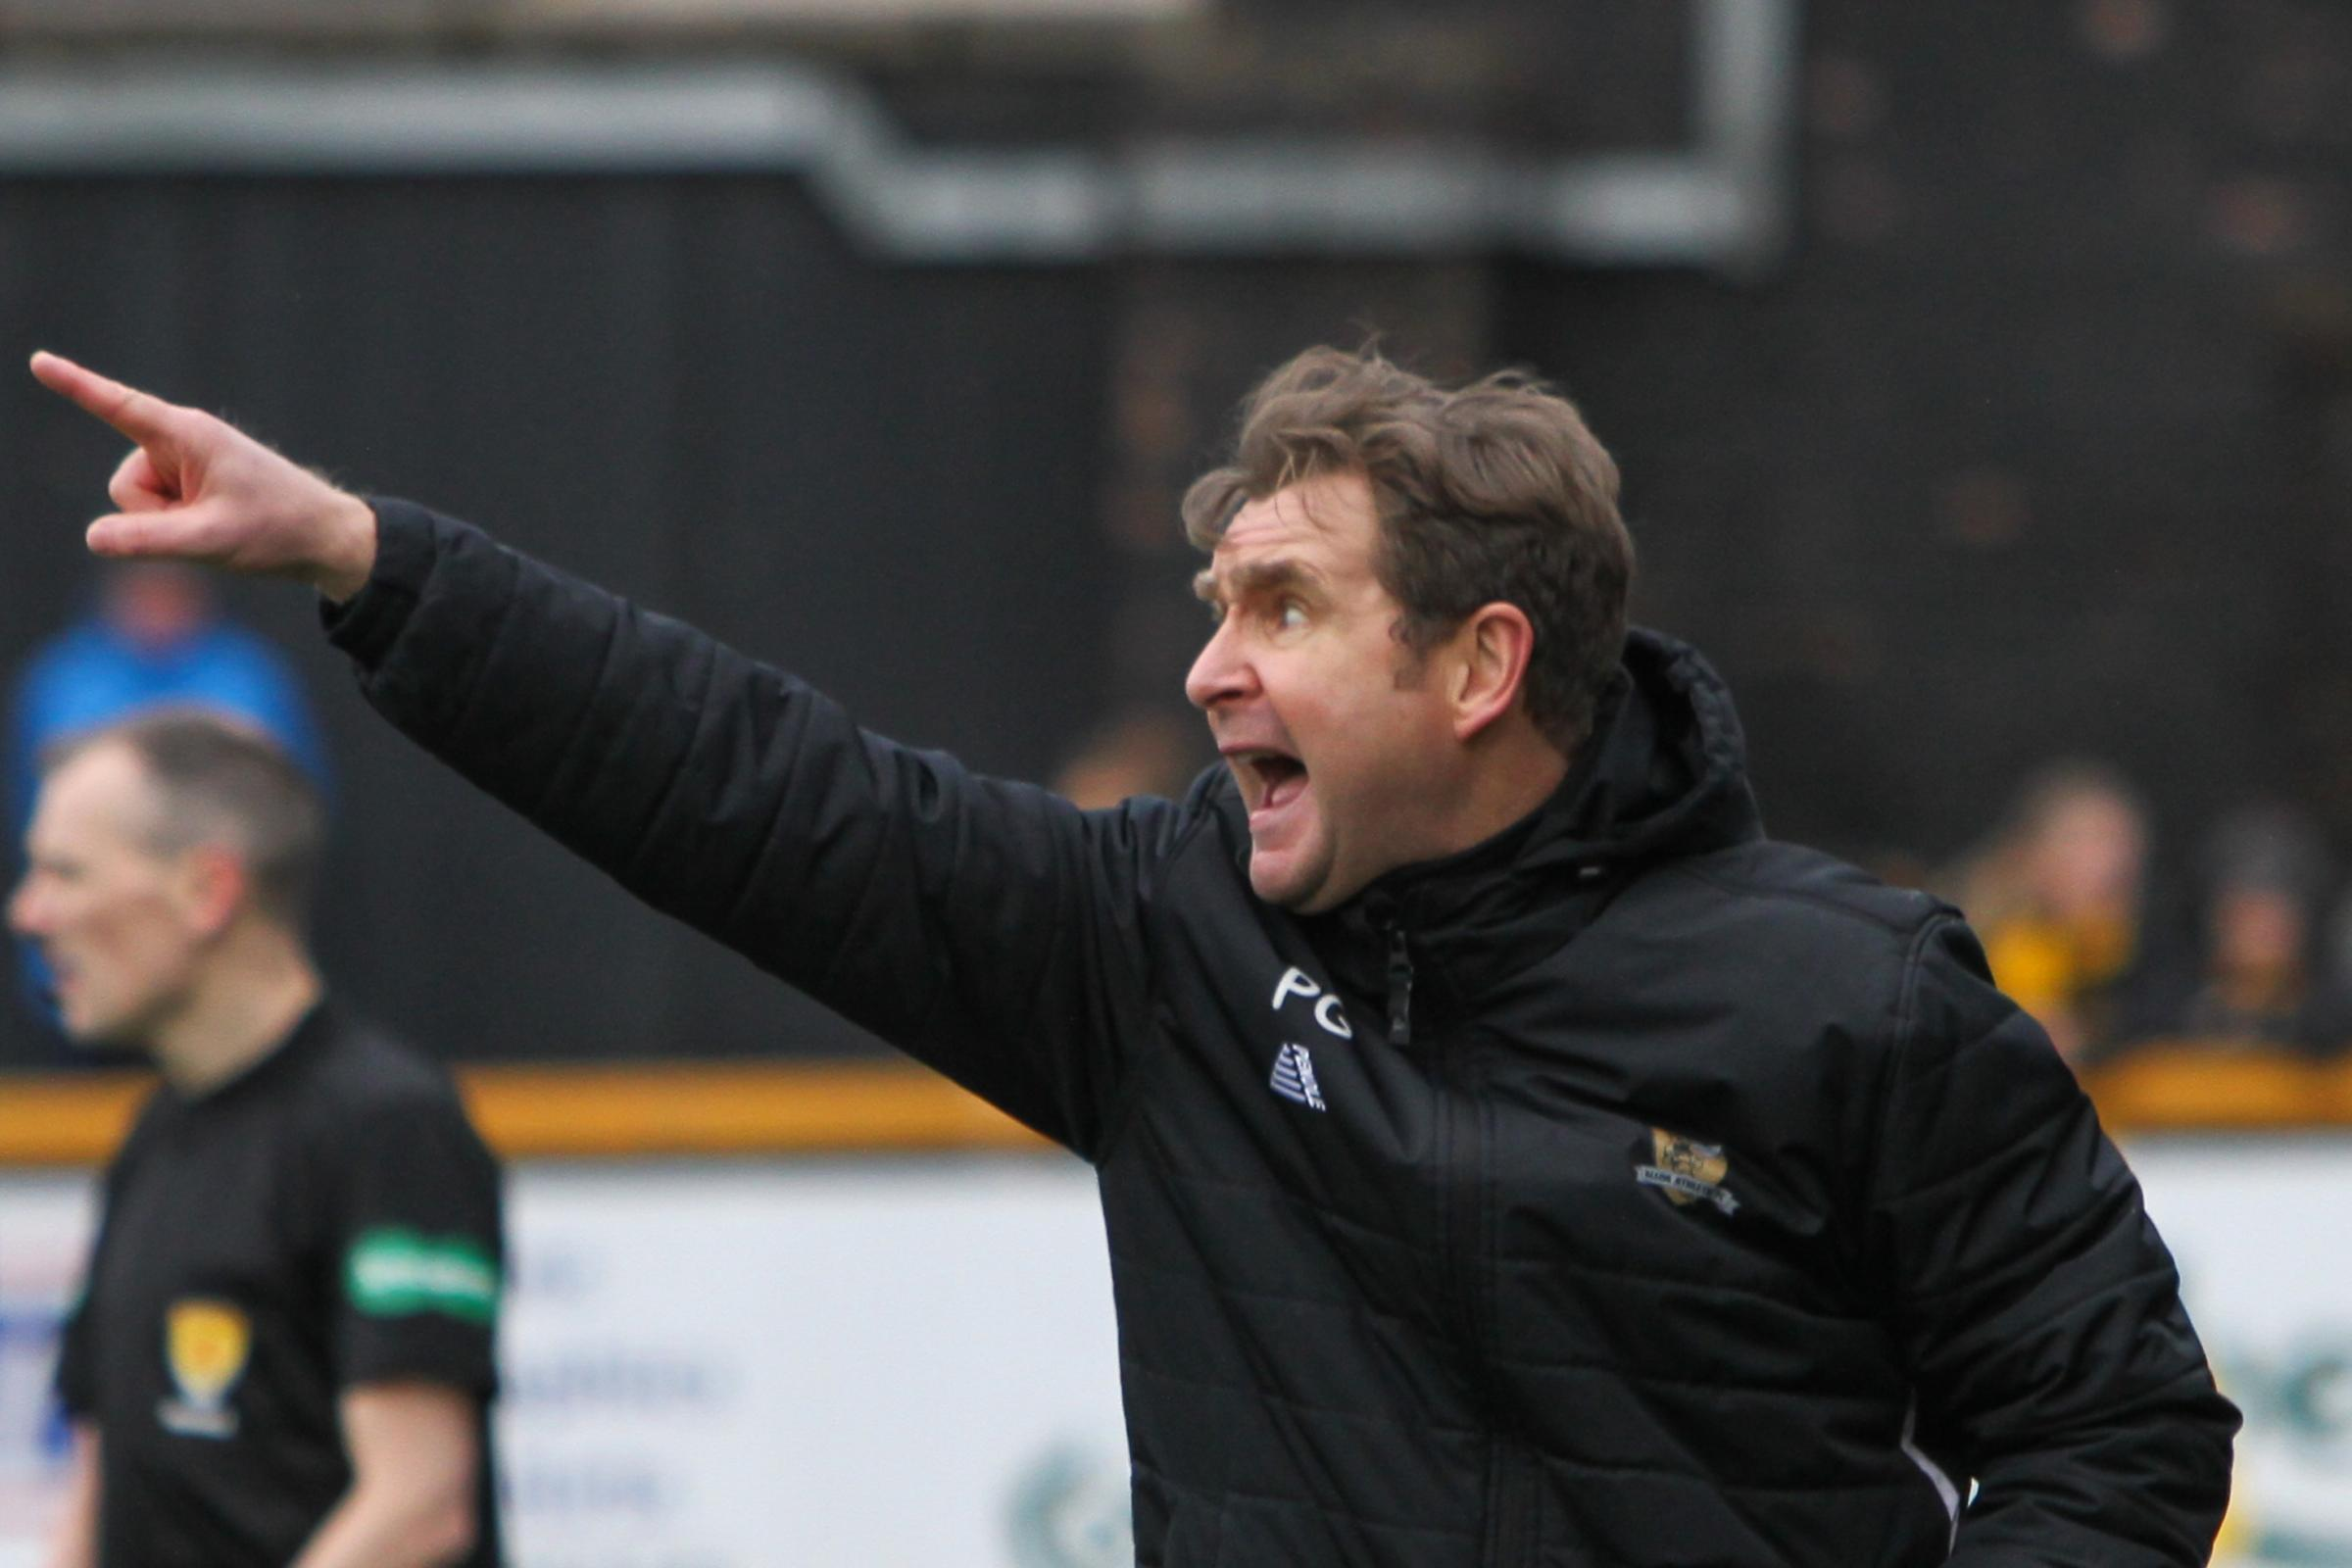 Alloa boss: 'We showed a completely different side to ourselves'